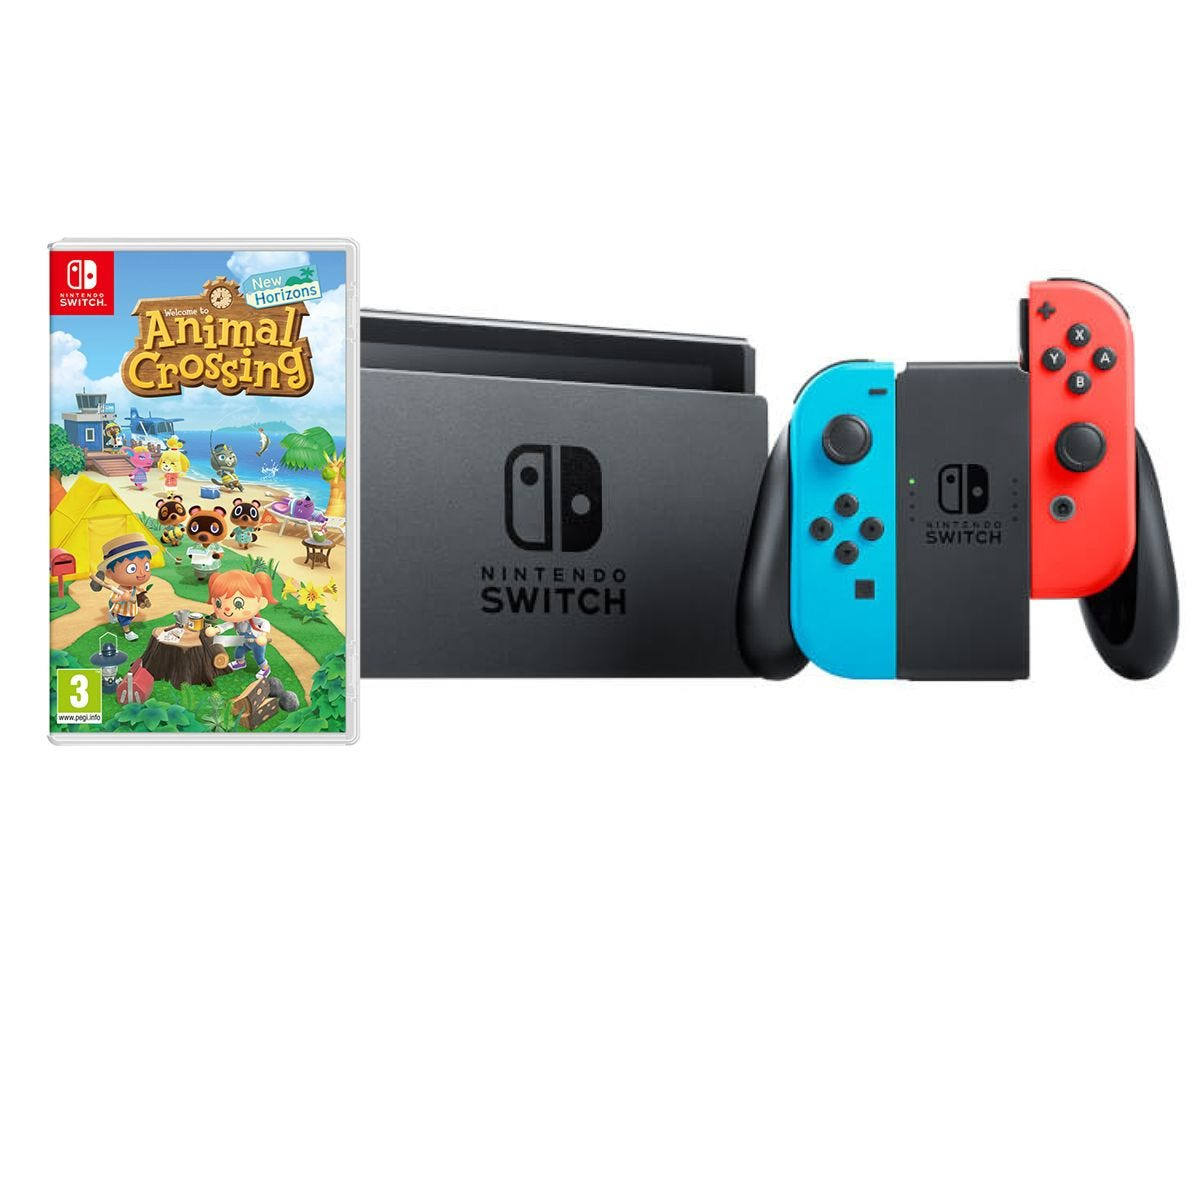 Nintendo Switch HW with Animal Crossing - Neon Red/Neon Blue